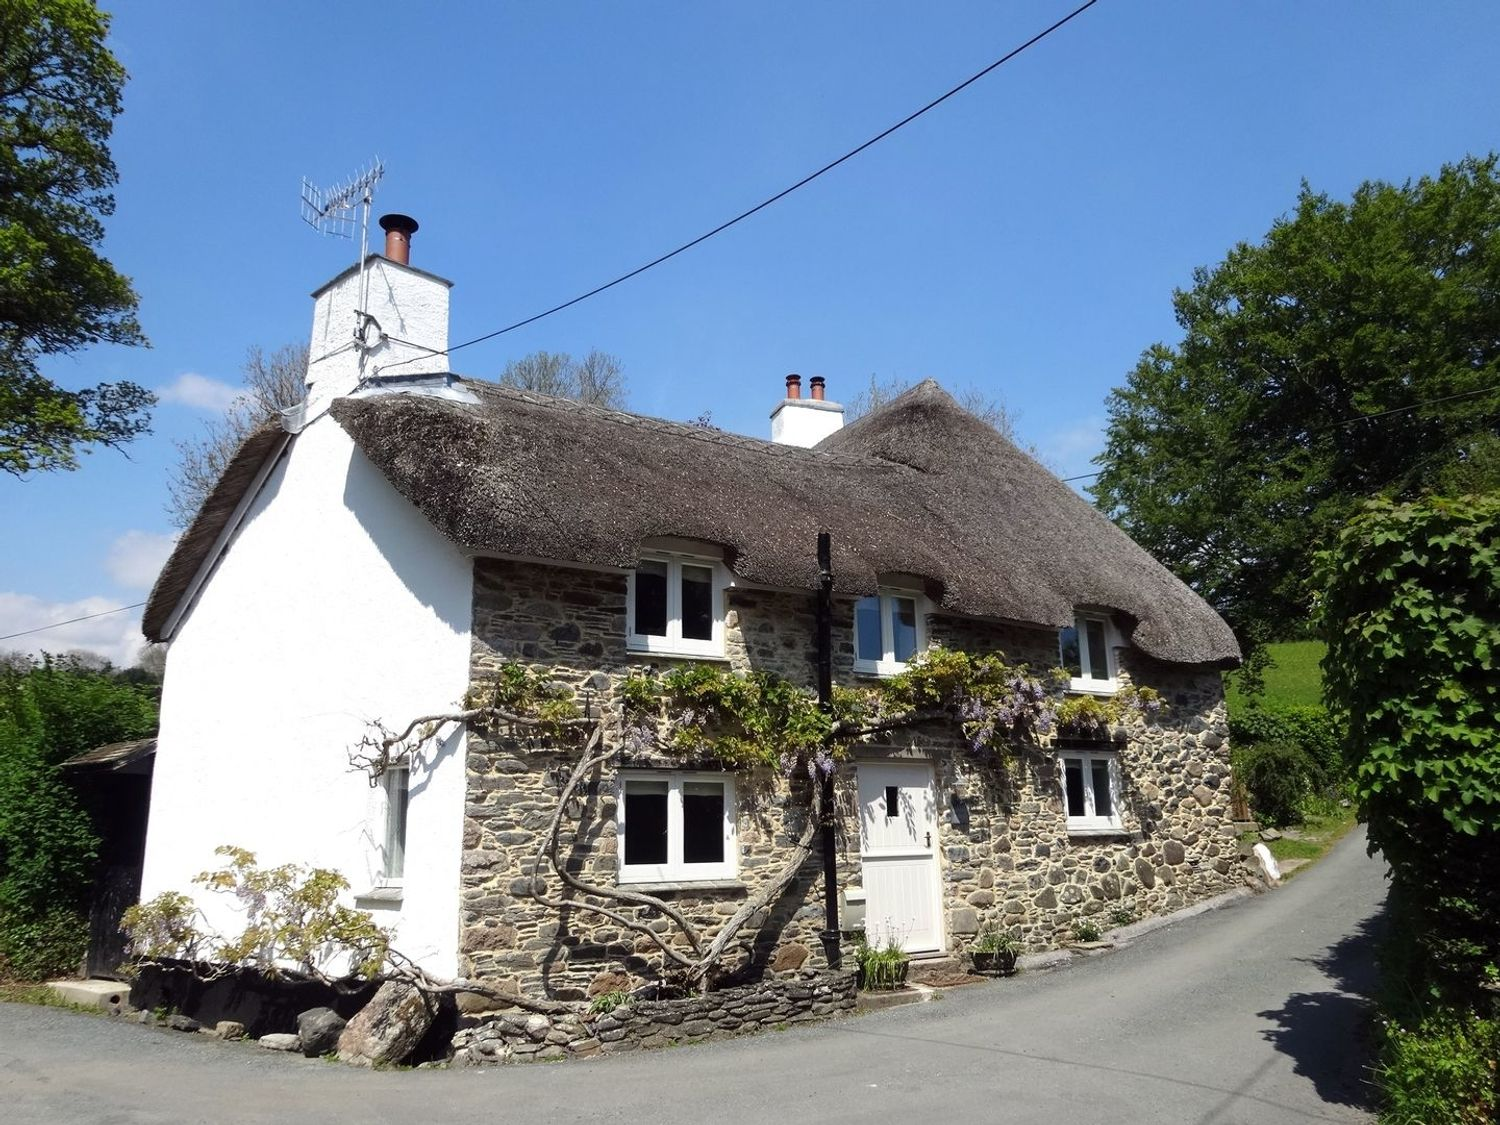 Cullaford Cottage, Scorriton, near Ashburton, Dartmoor, Devon